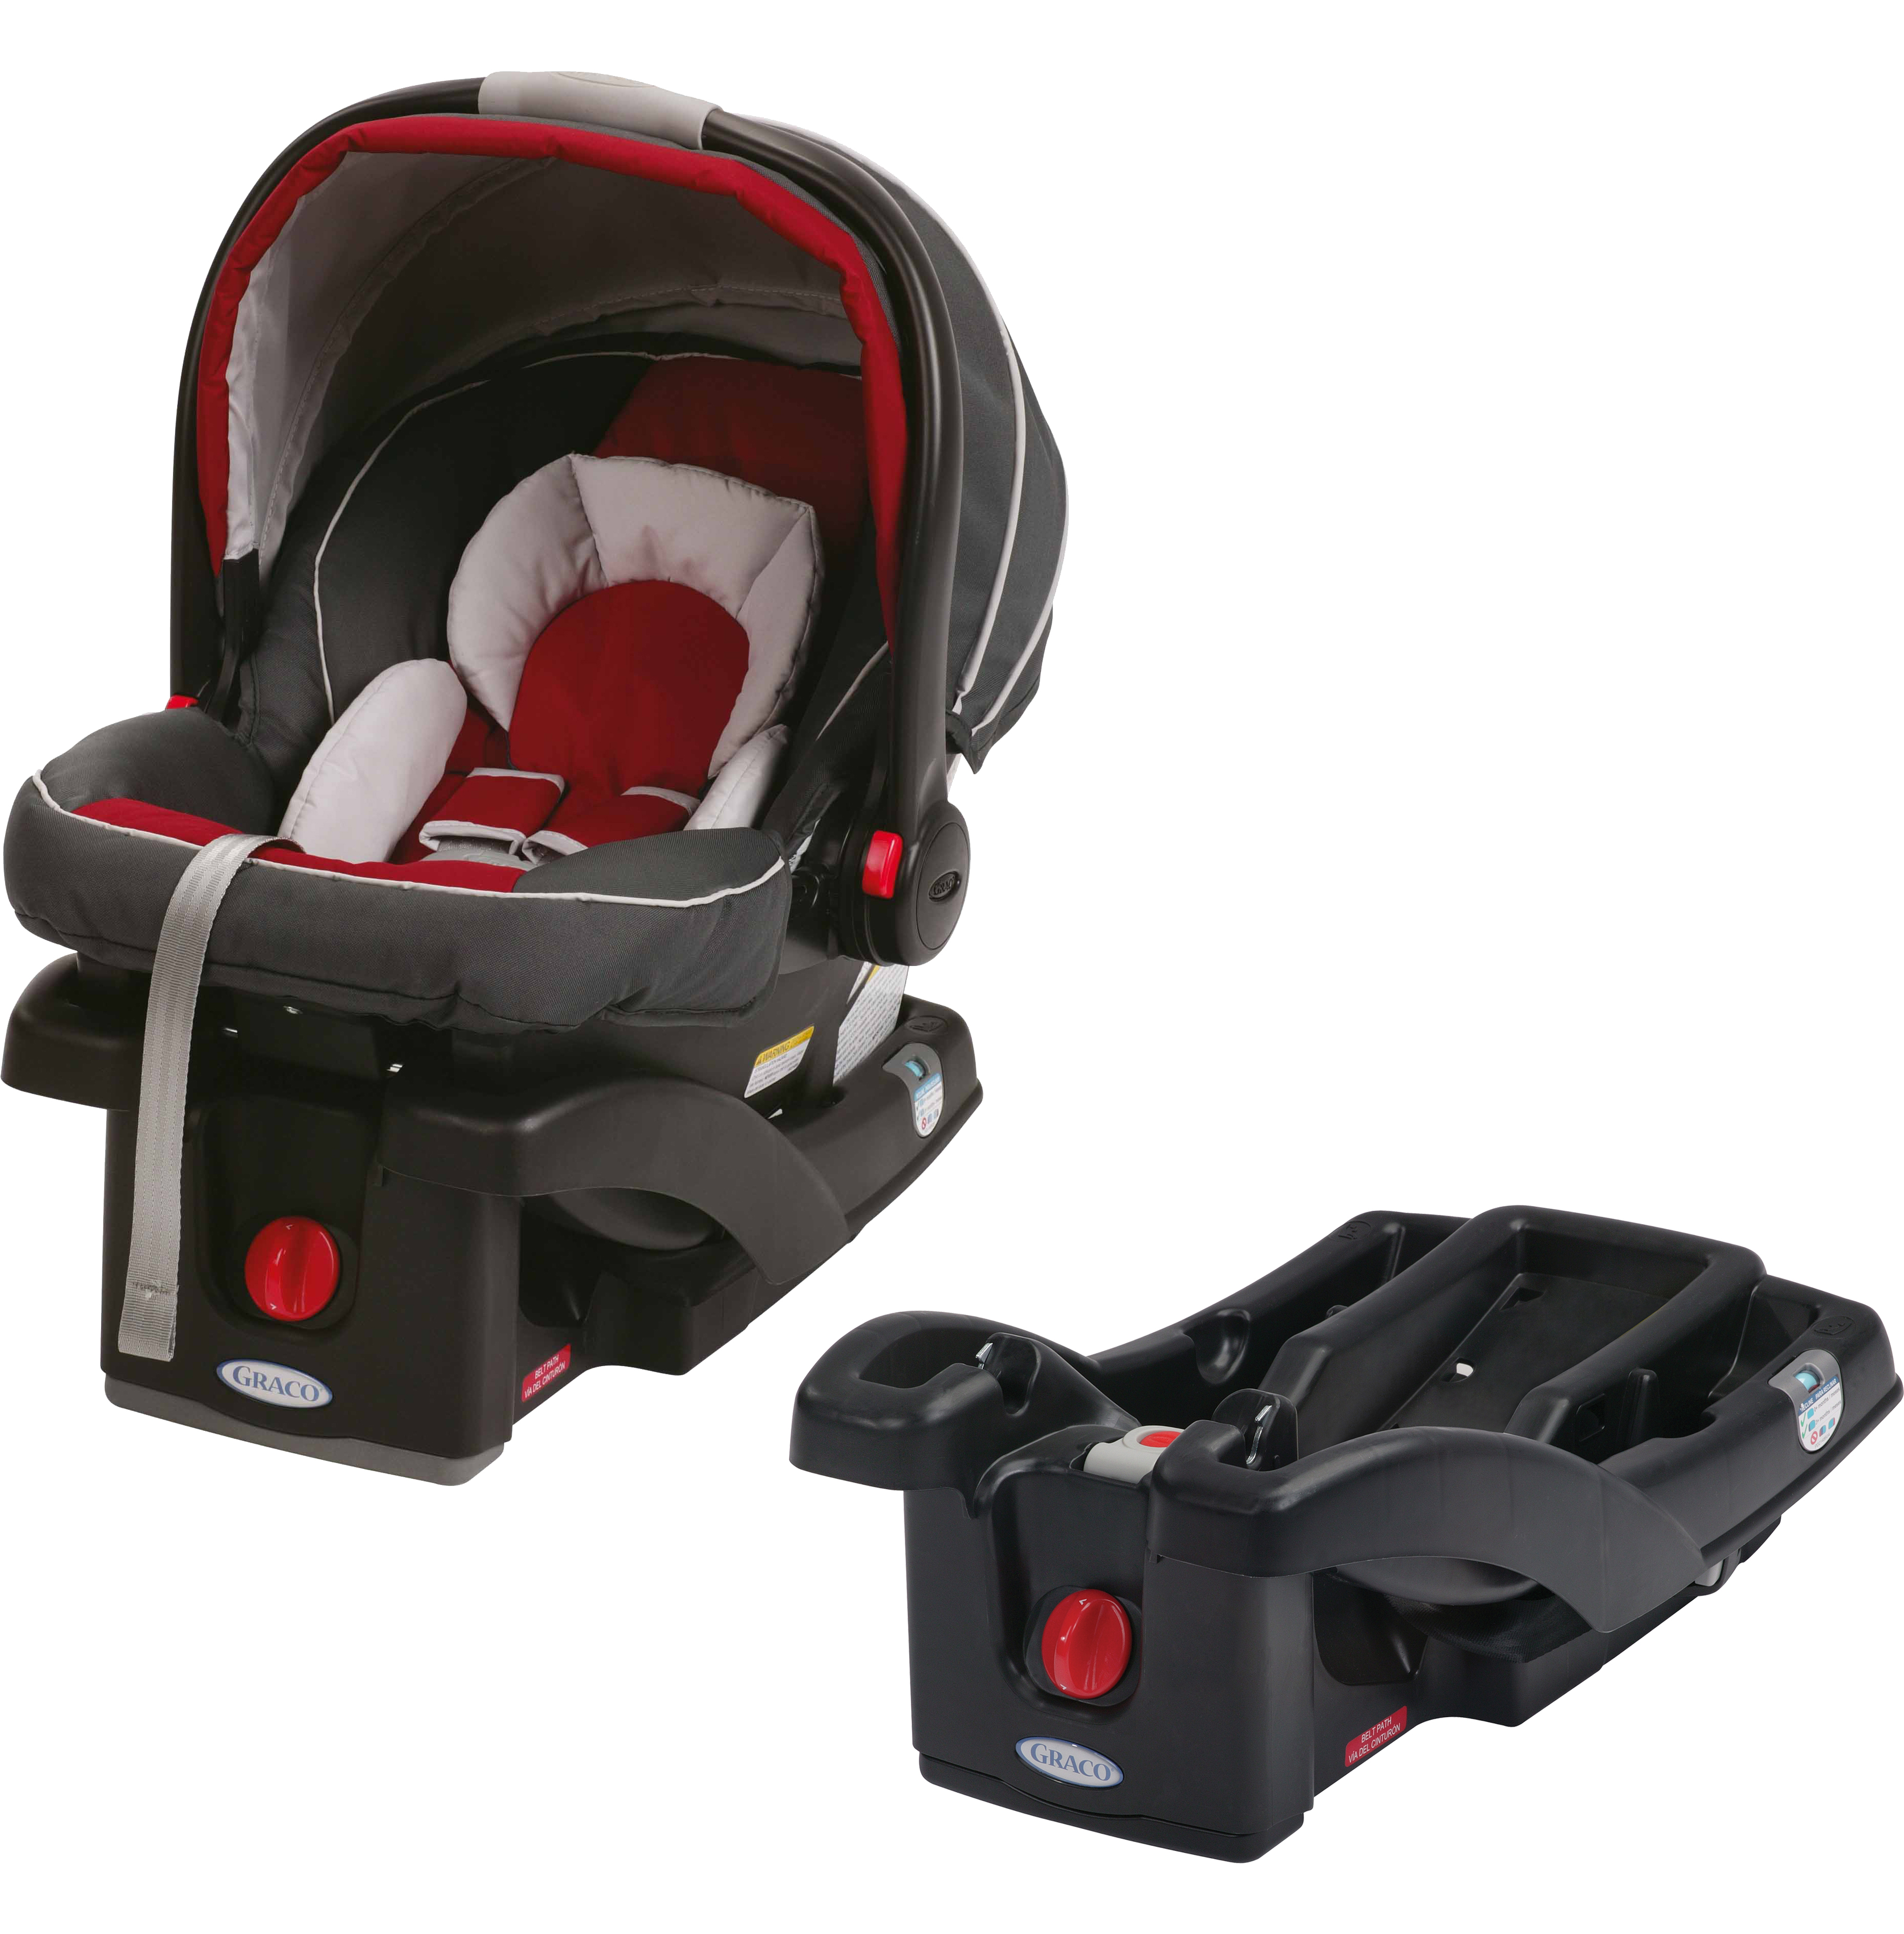 Graco SnugRide Click Connect 35 Infant Car Seat, Choose Your Color, AND SnugRider Stroller Frame